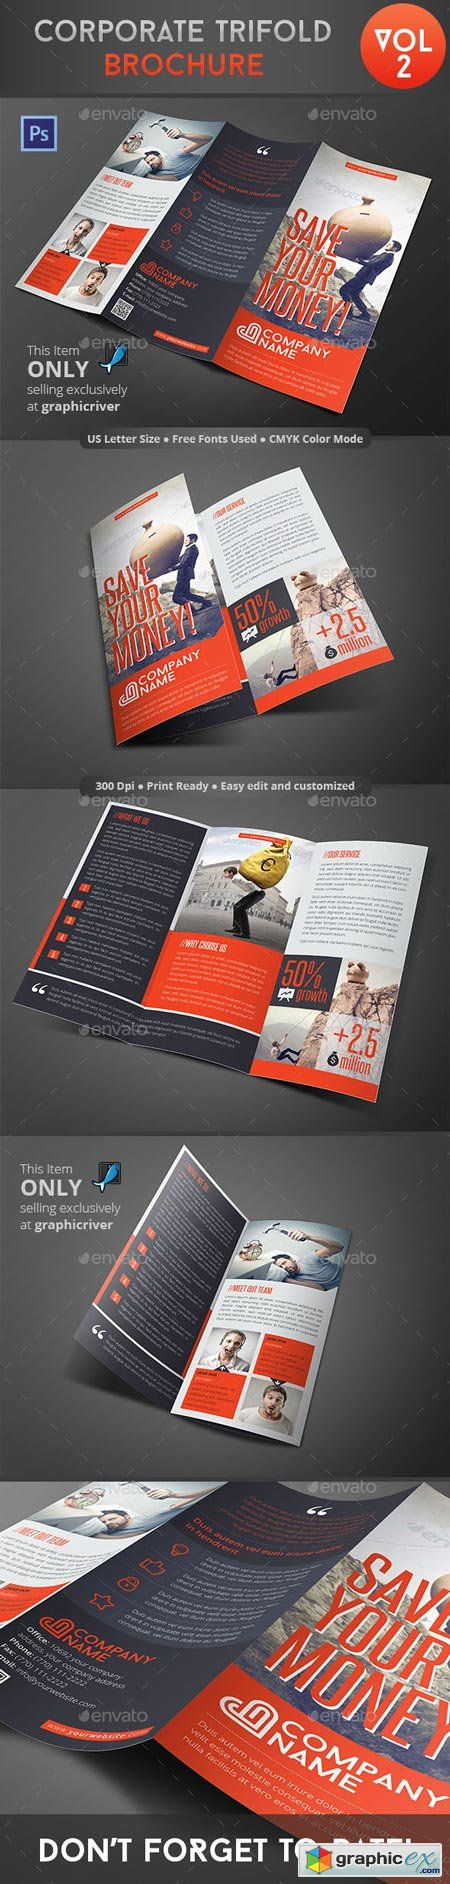 Corporate Trifold Brochure Vol 2 8953109